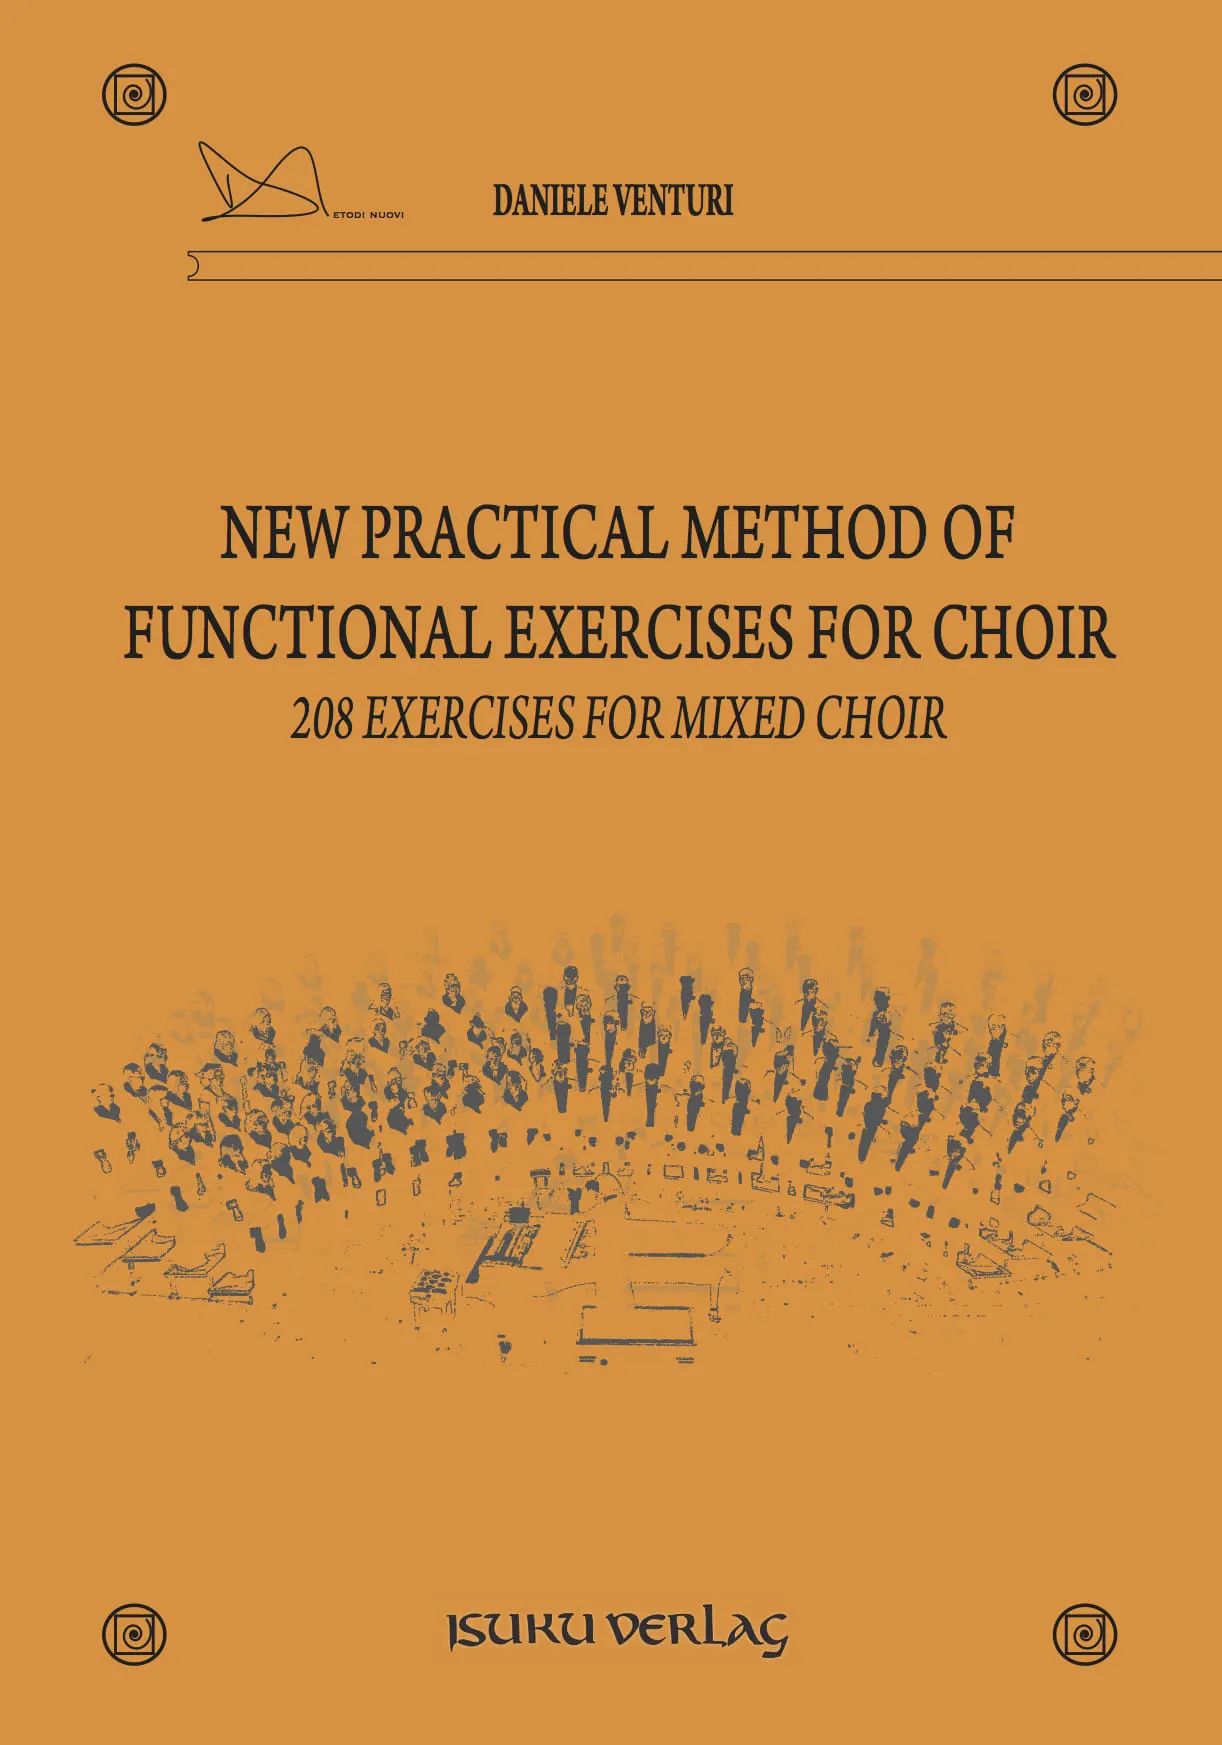 New practical method of functional exercises for choir is